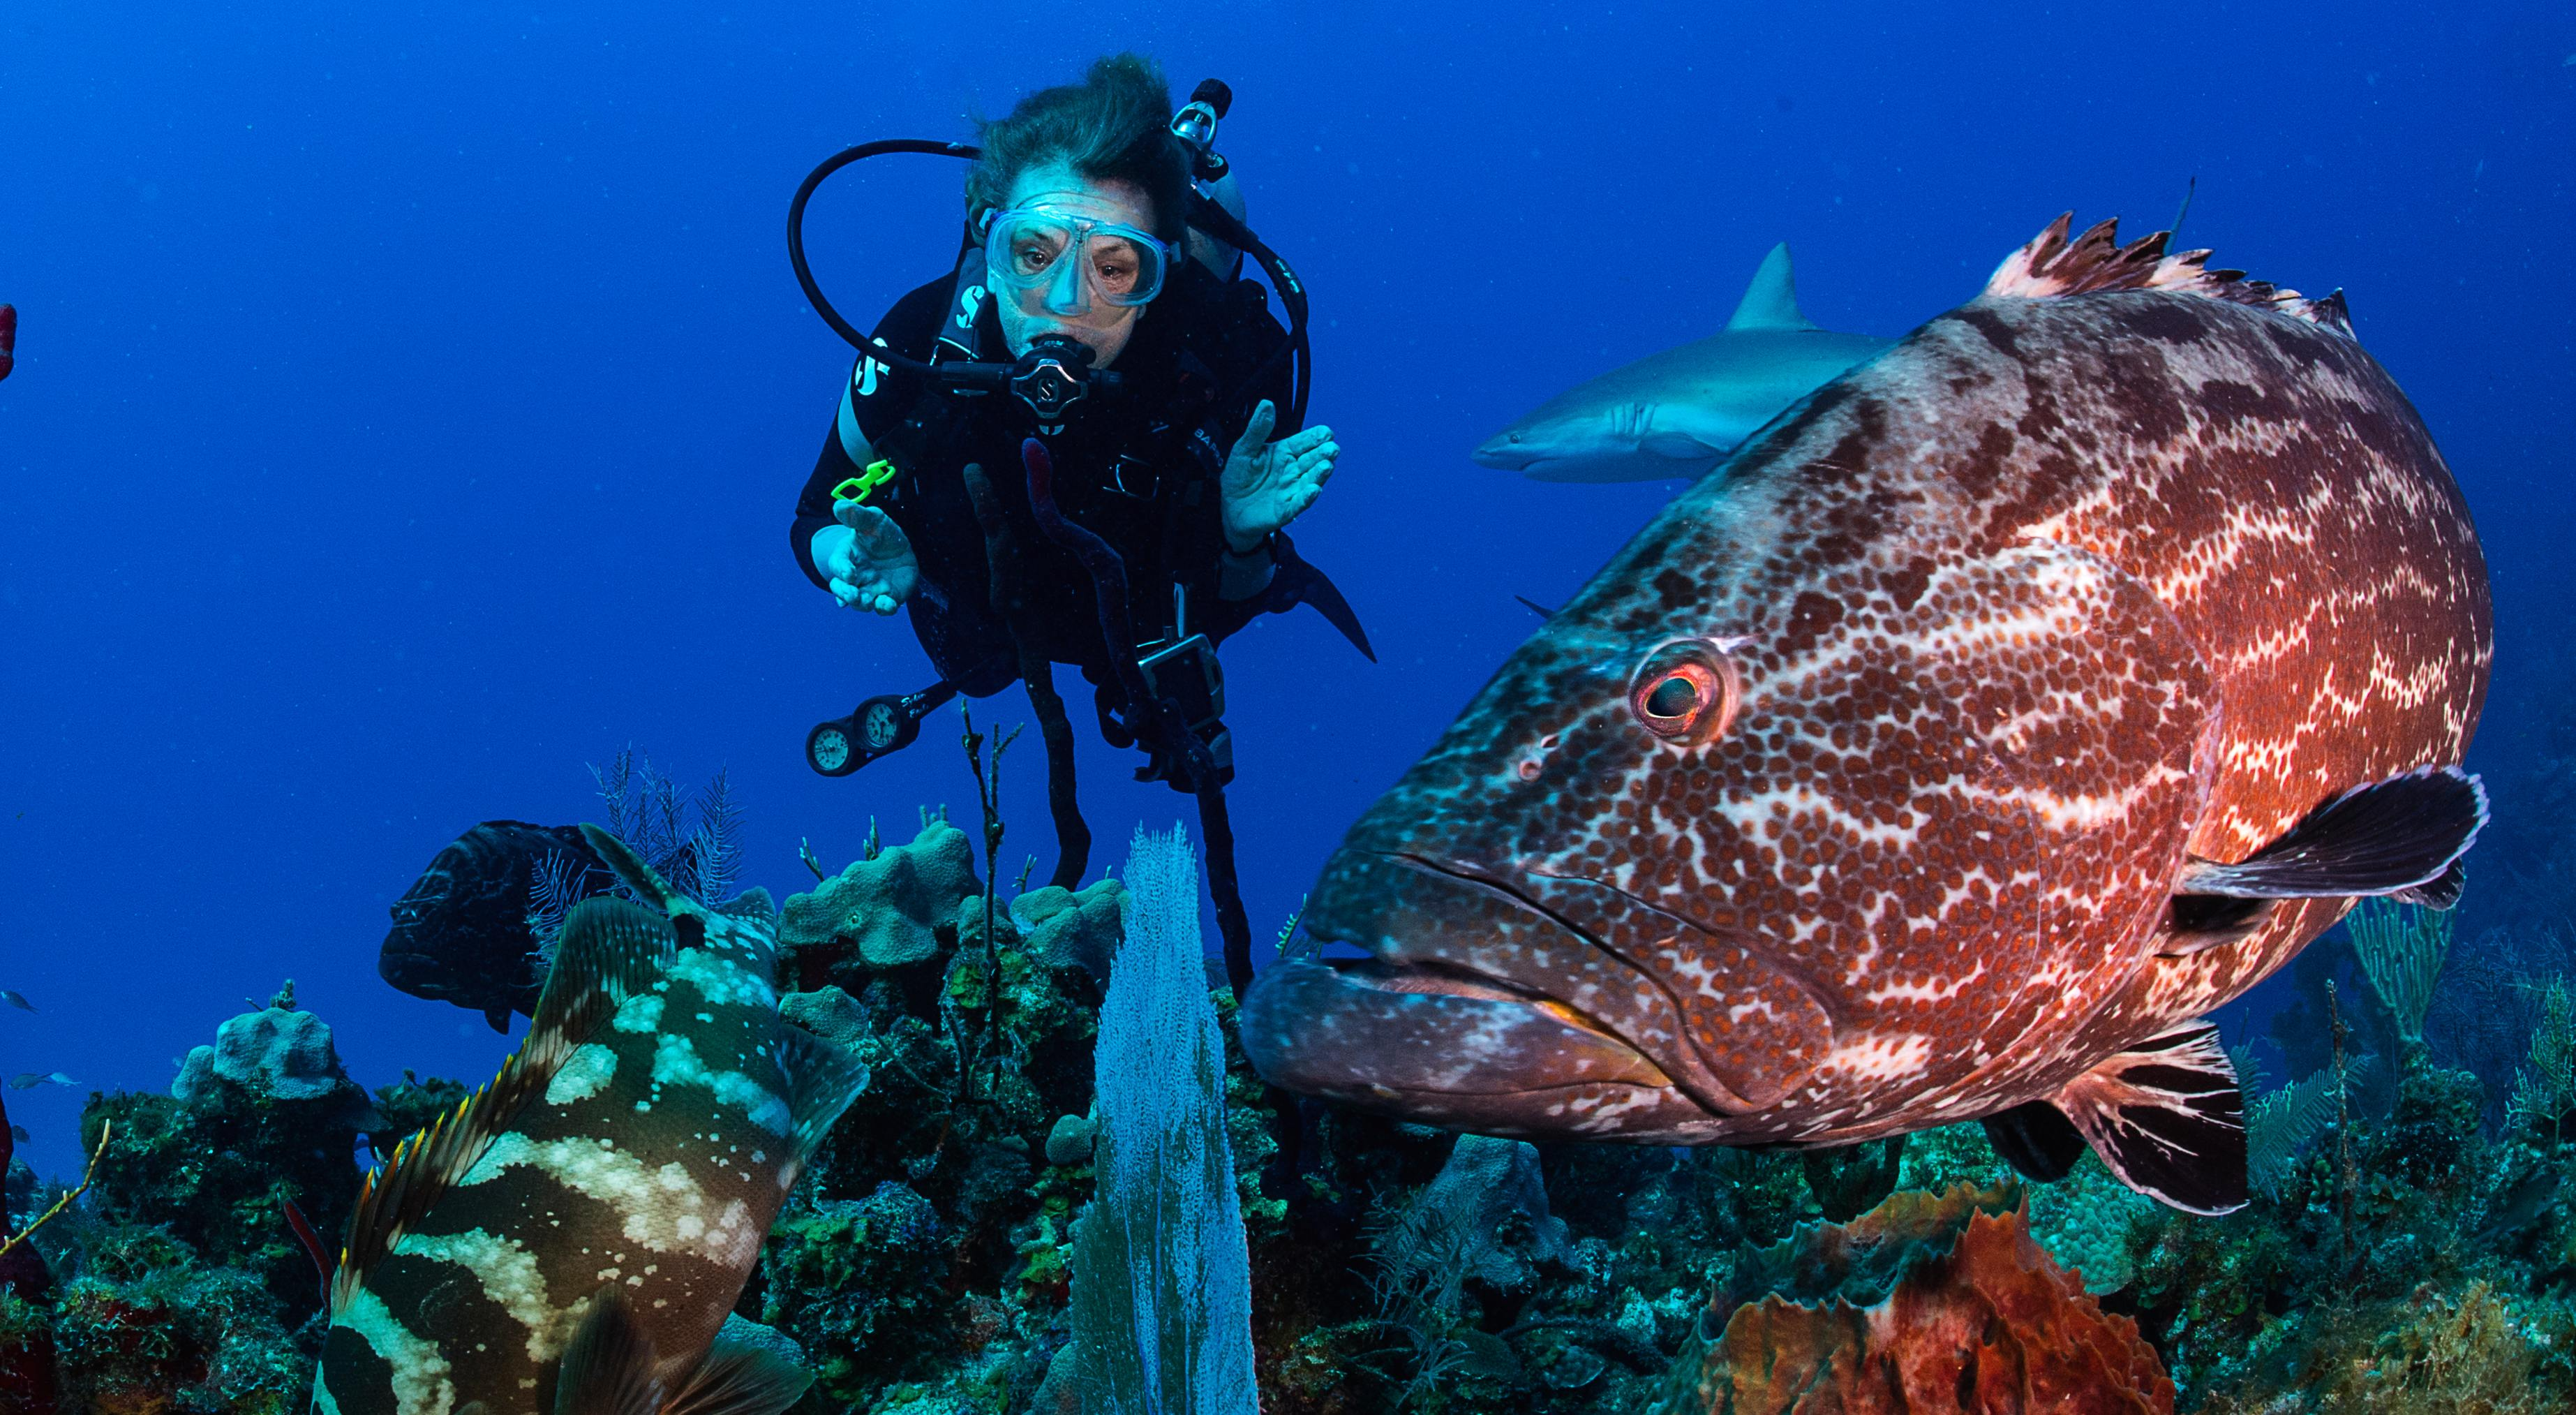 But tell as a little bit about your awakening and wonder to the natural world. Aurora Expeditions Sea Of Cortez Cruise With Dr Sylvia Earle Seatrade Cruise Com